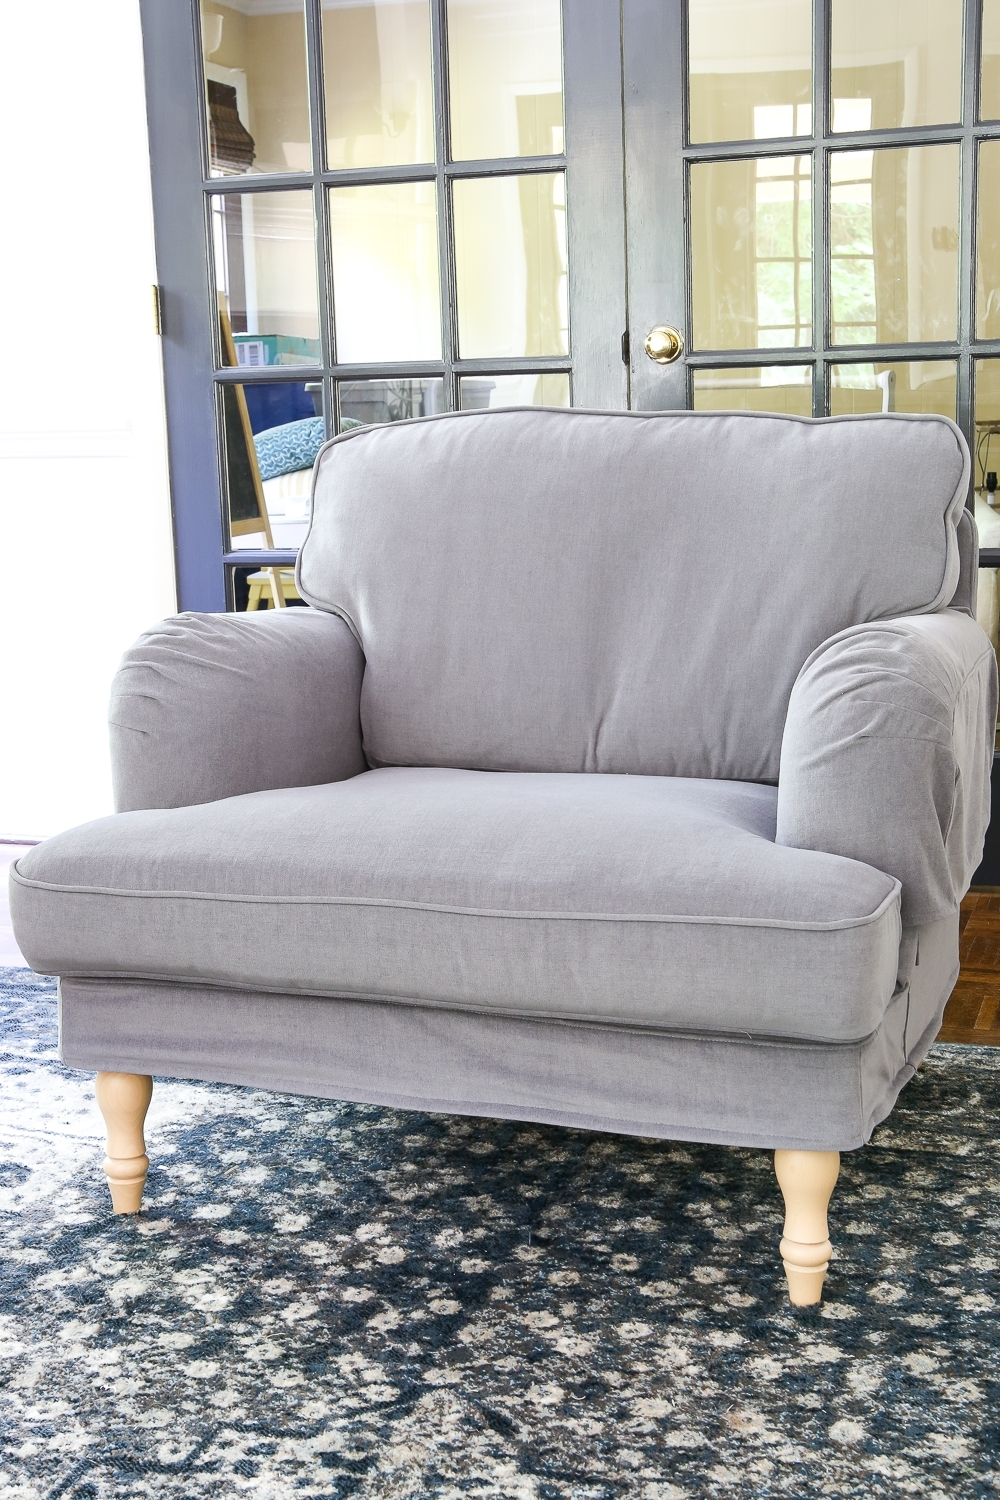 Most Recent Comfortable Sofas And Chairs Throughout Ikea's New Sofa And Chairs And How To Keep Them Clean – Bless'er House (View 12 of 15)